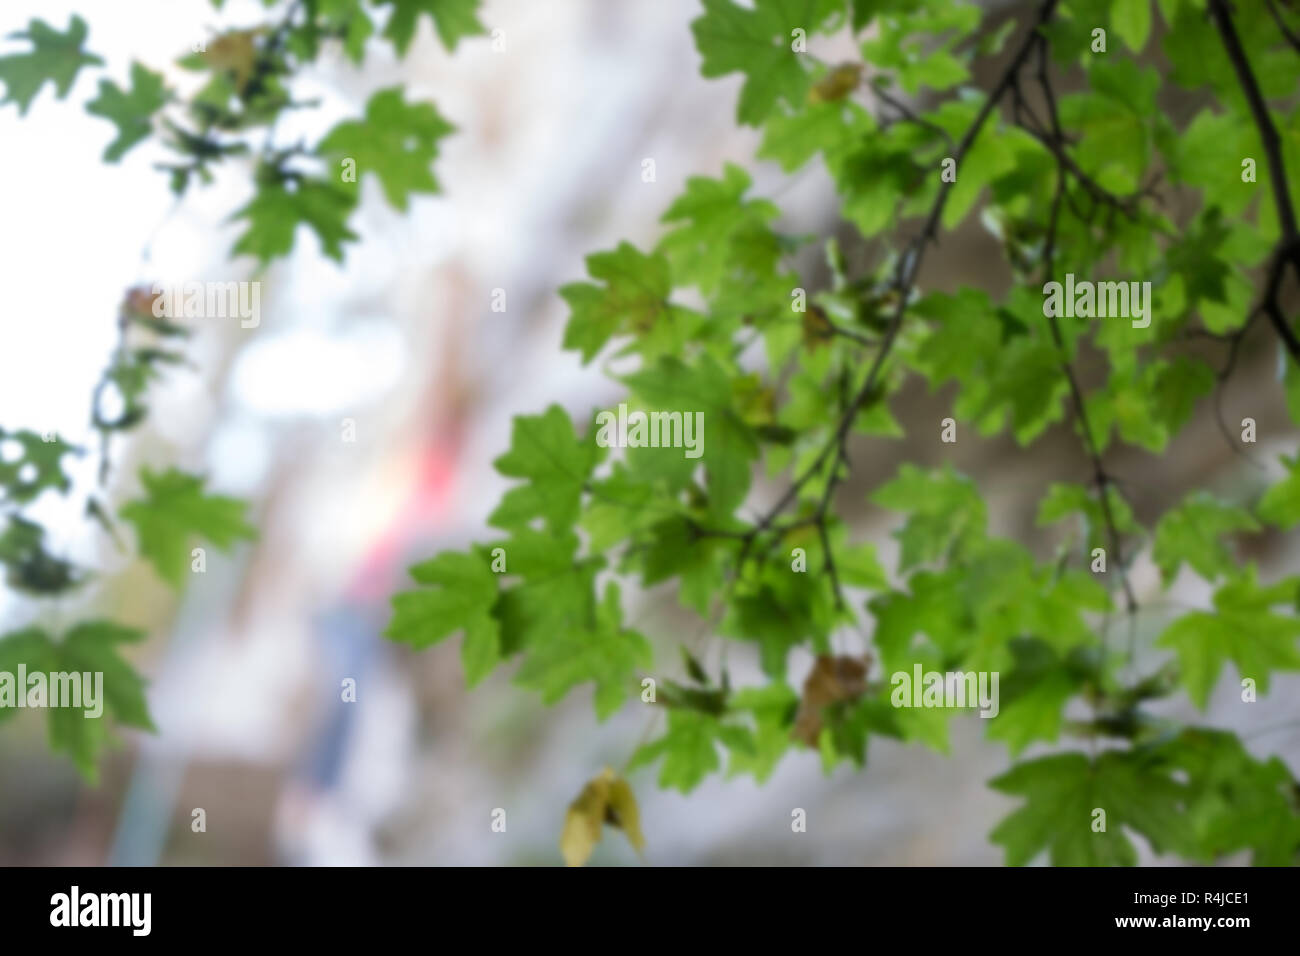 Photo of maple leaves on blurred background summer - Stock Image